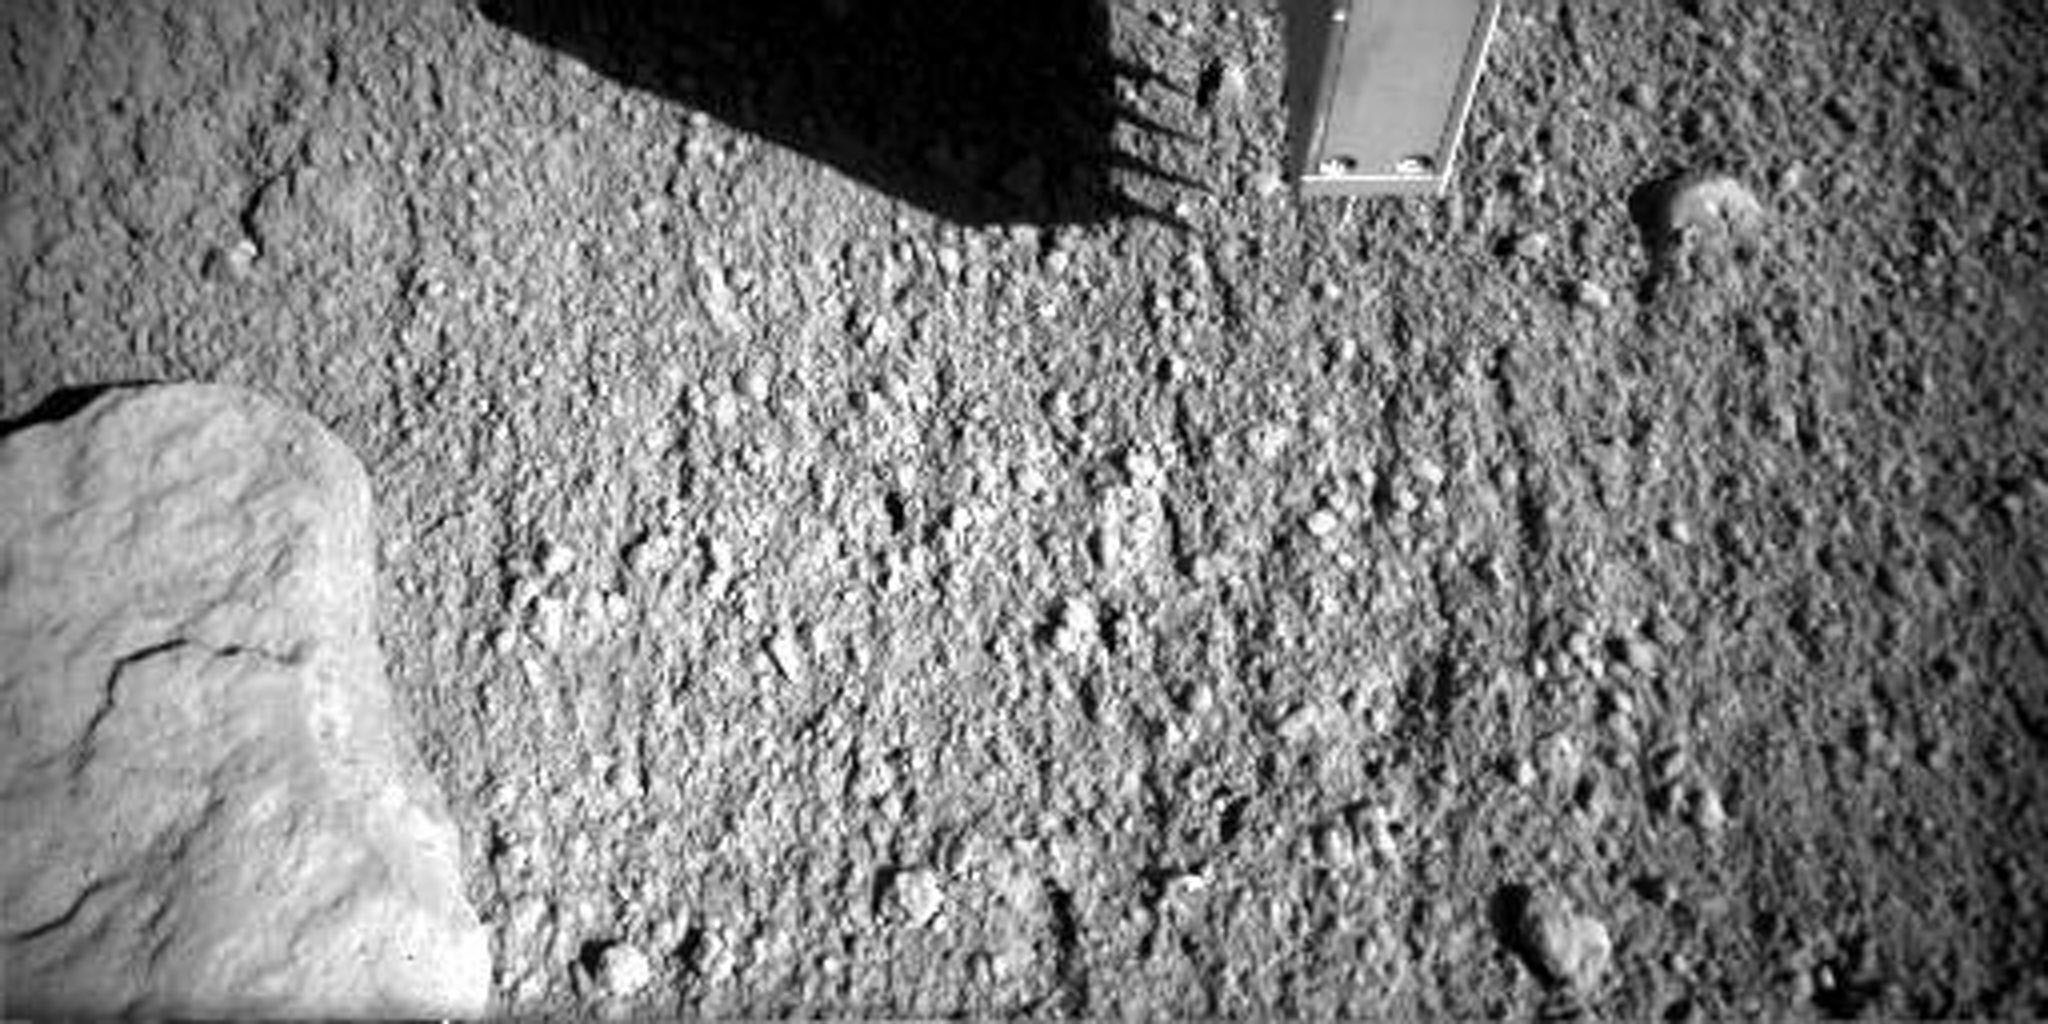 This image shows the first time that the four spikes of the NASA's Phoenix Mars Lander's thermal and electrical conductivity probe were inserted into Martian soil.